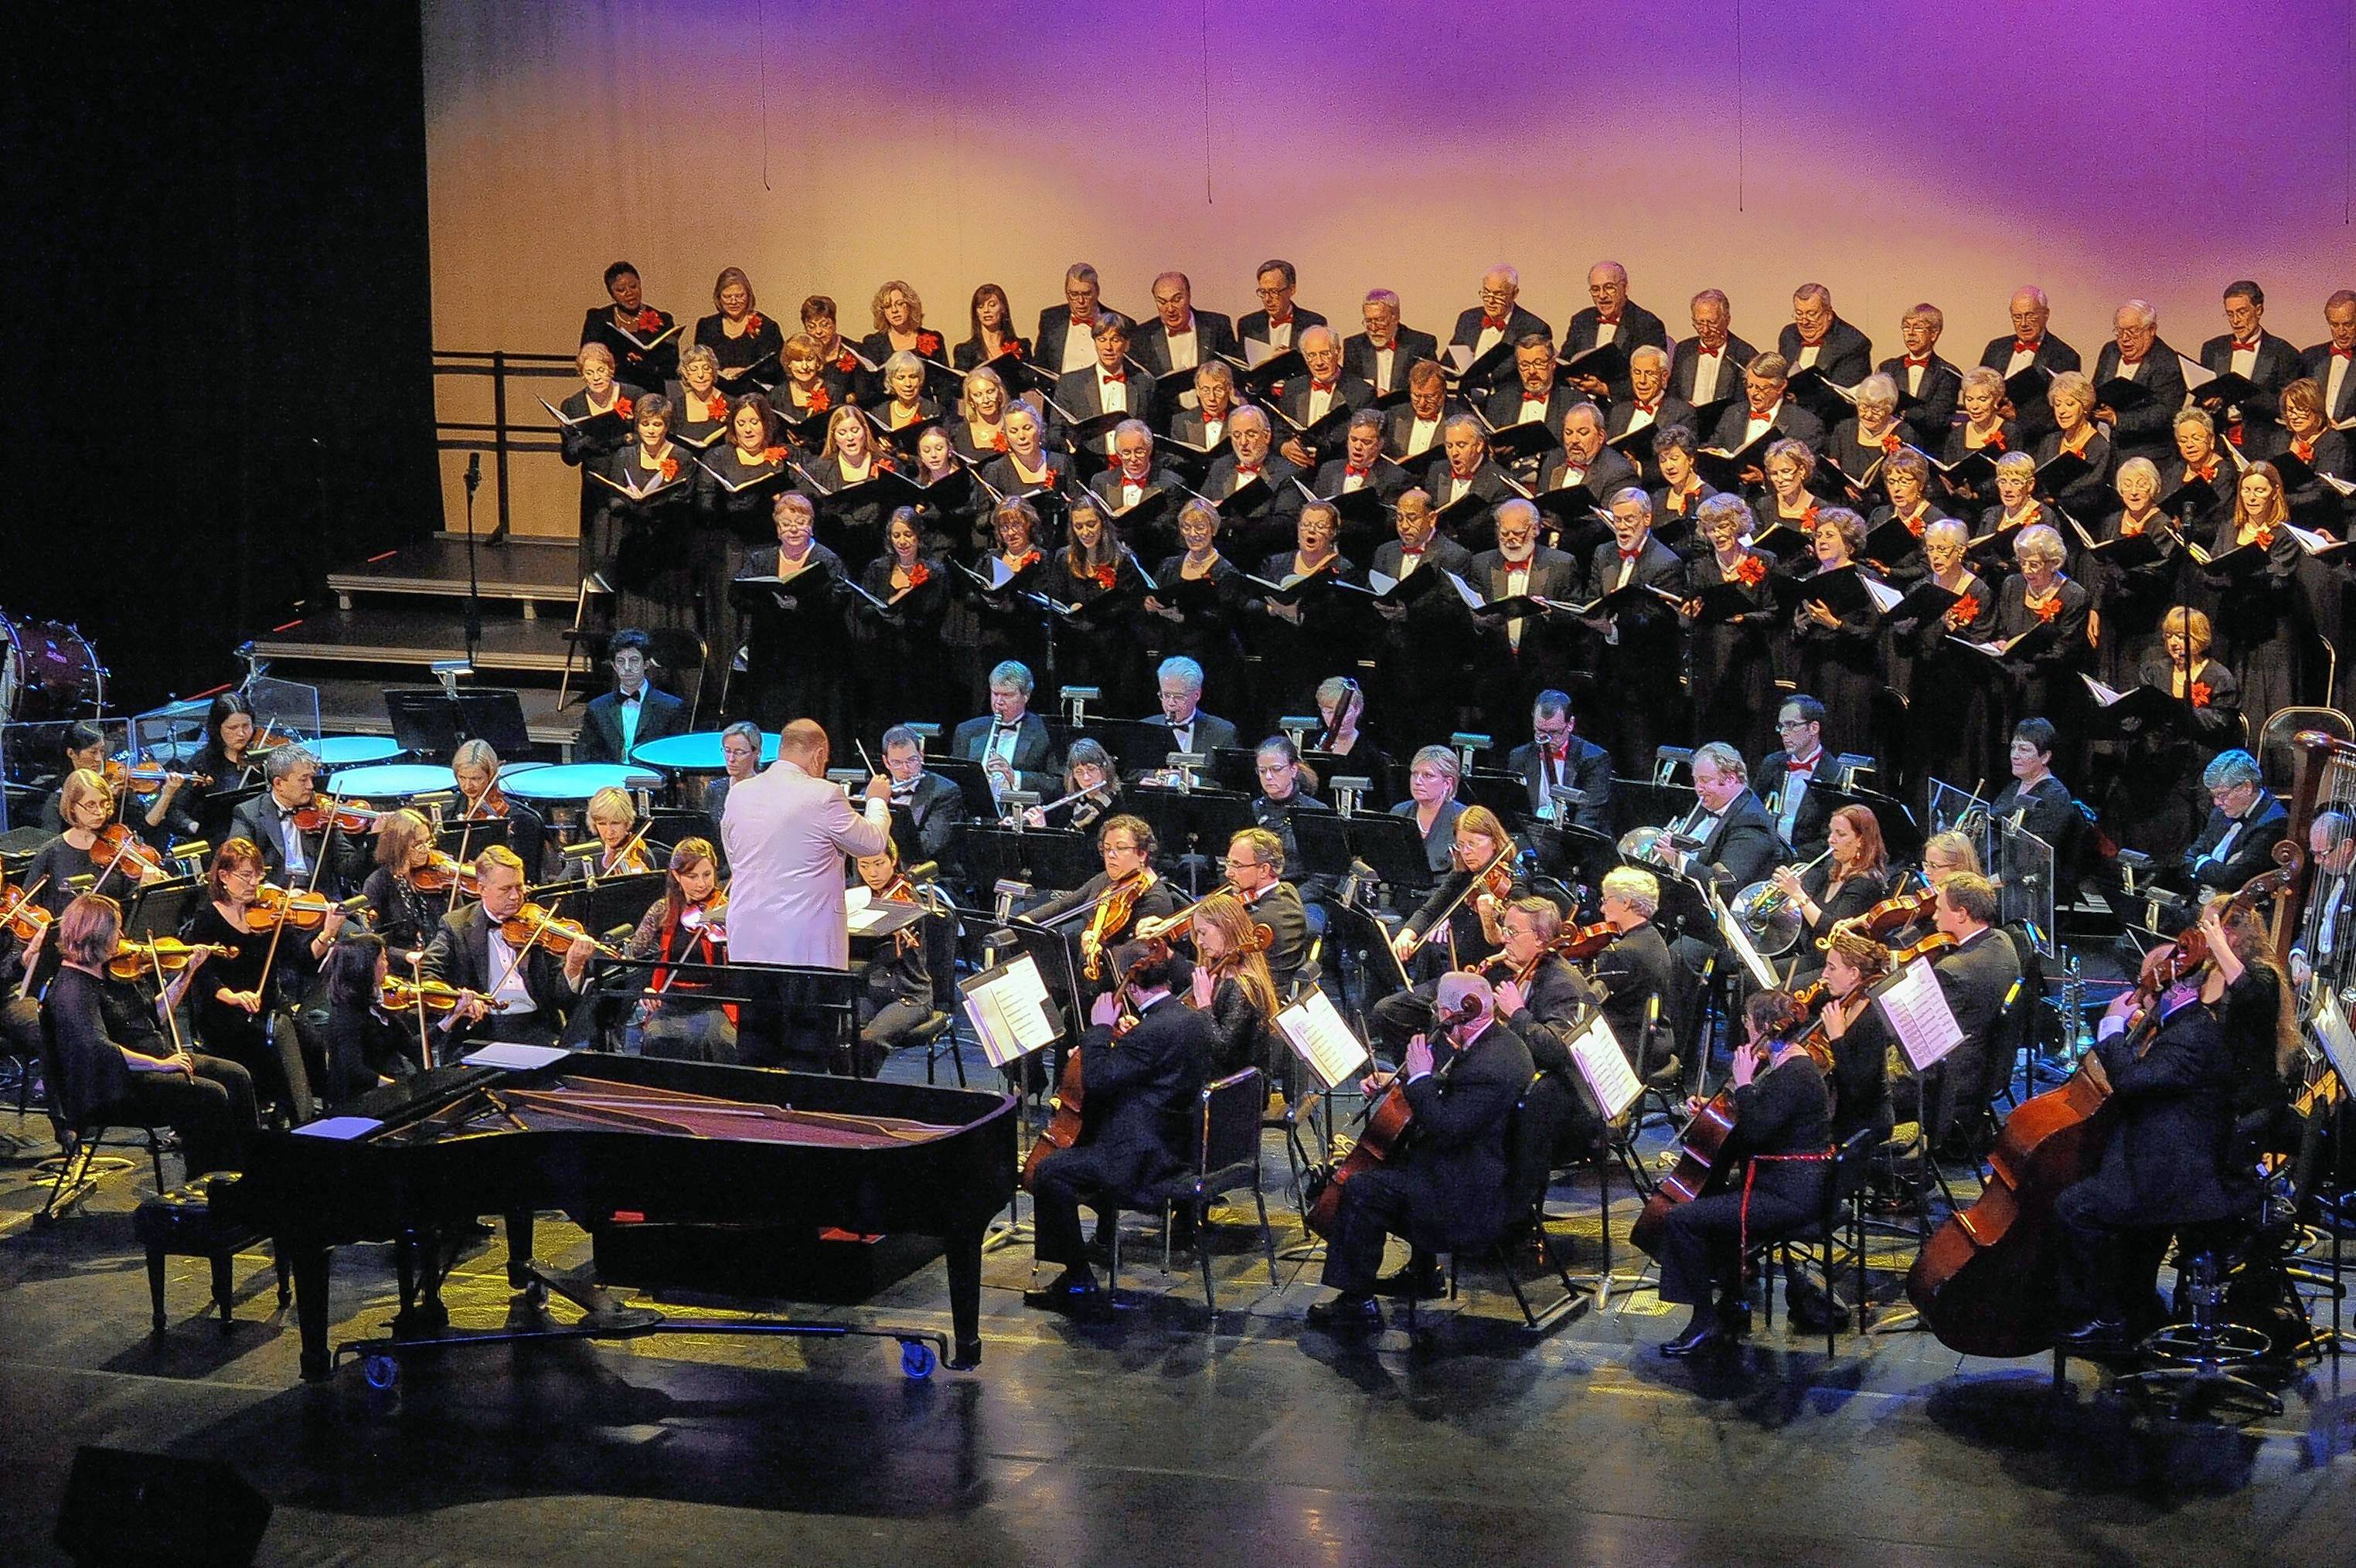 The Elgin Symphony Orchestra will be joined by the Elgin Master Chorale at its Magical Holiday Concerts.